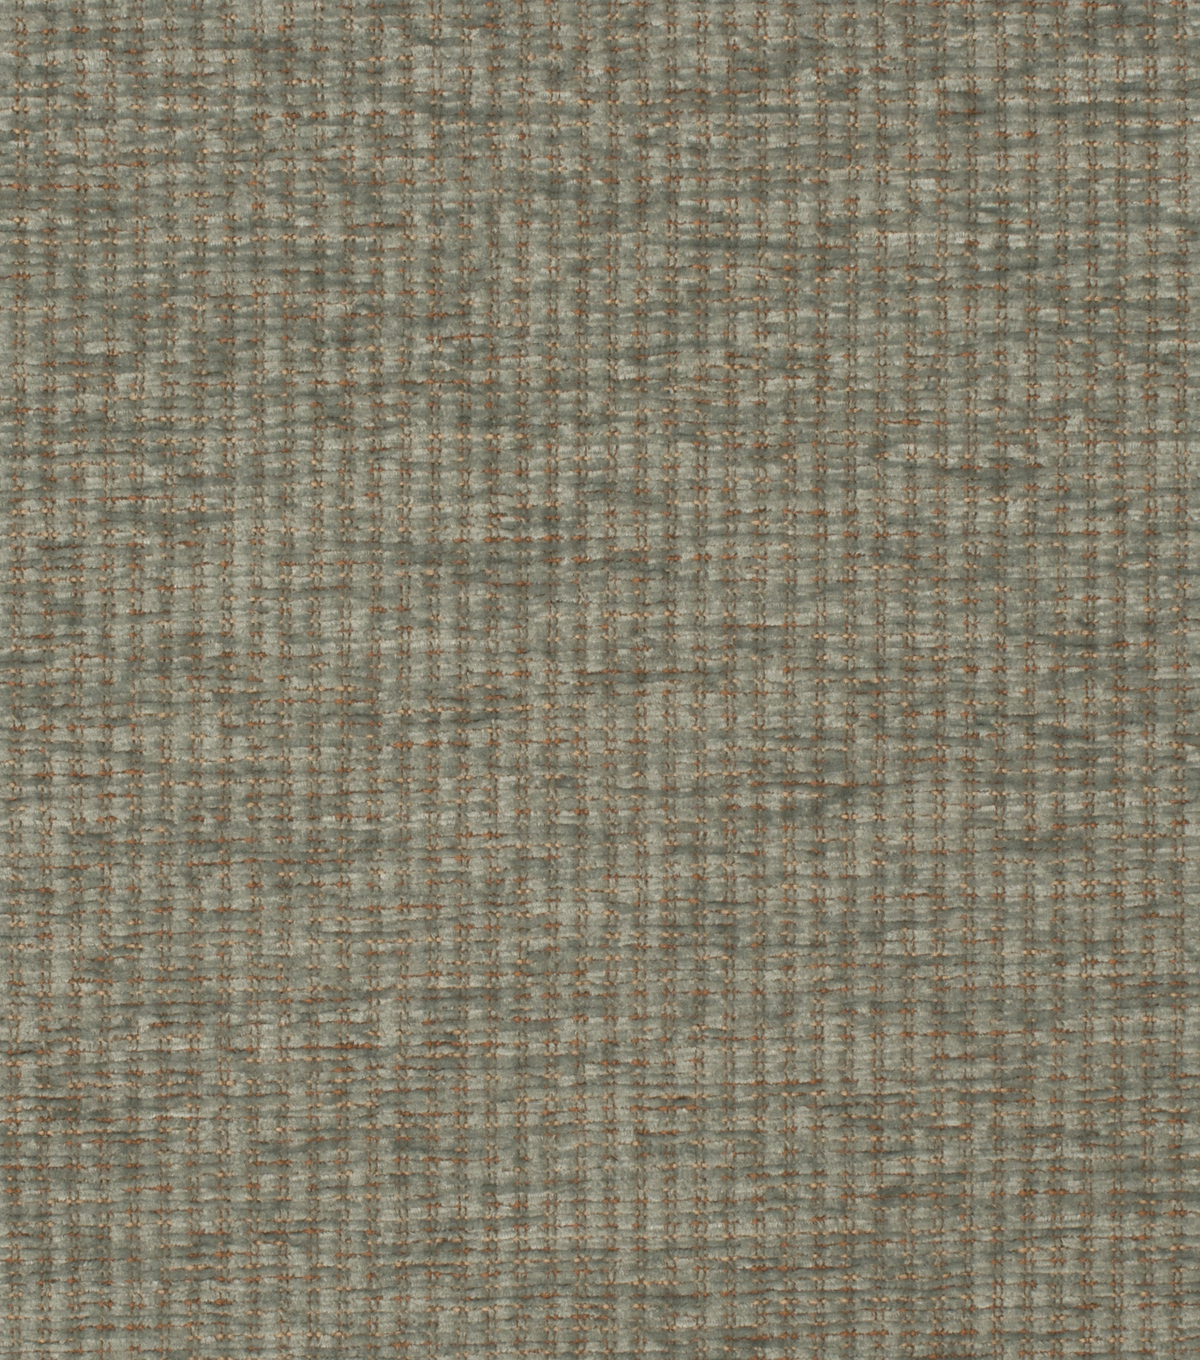 Eaton Square Multi-Purpose Decor Fabric 54\u0022-Oswaldo/Blue Mist